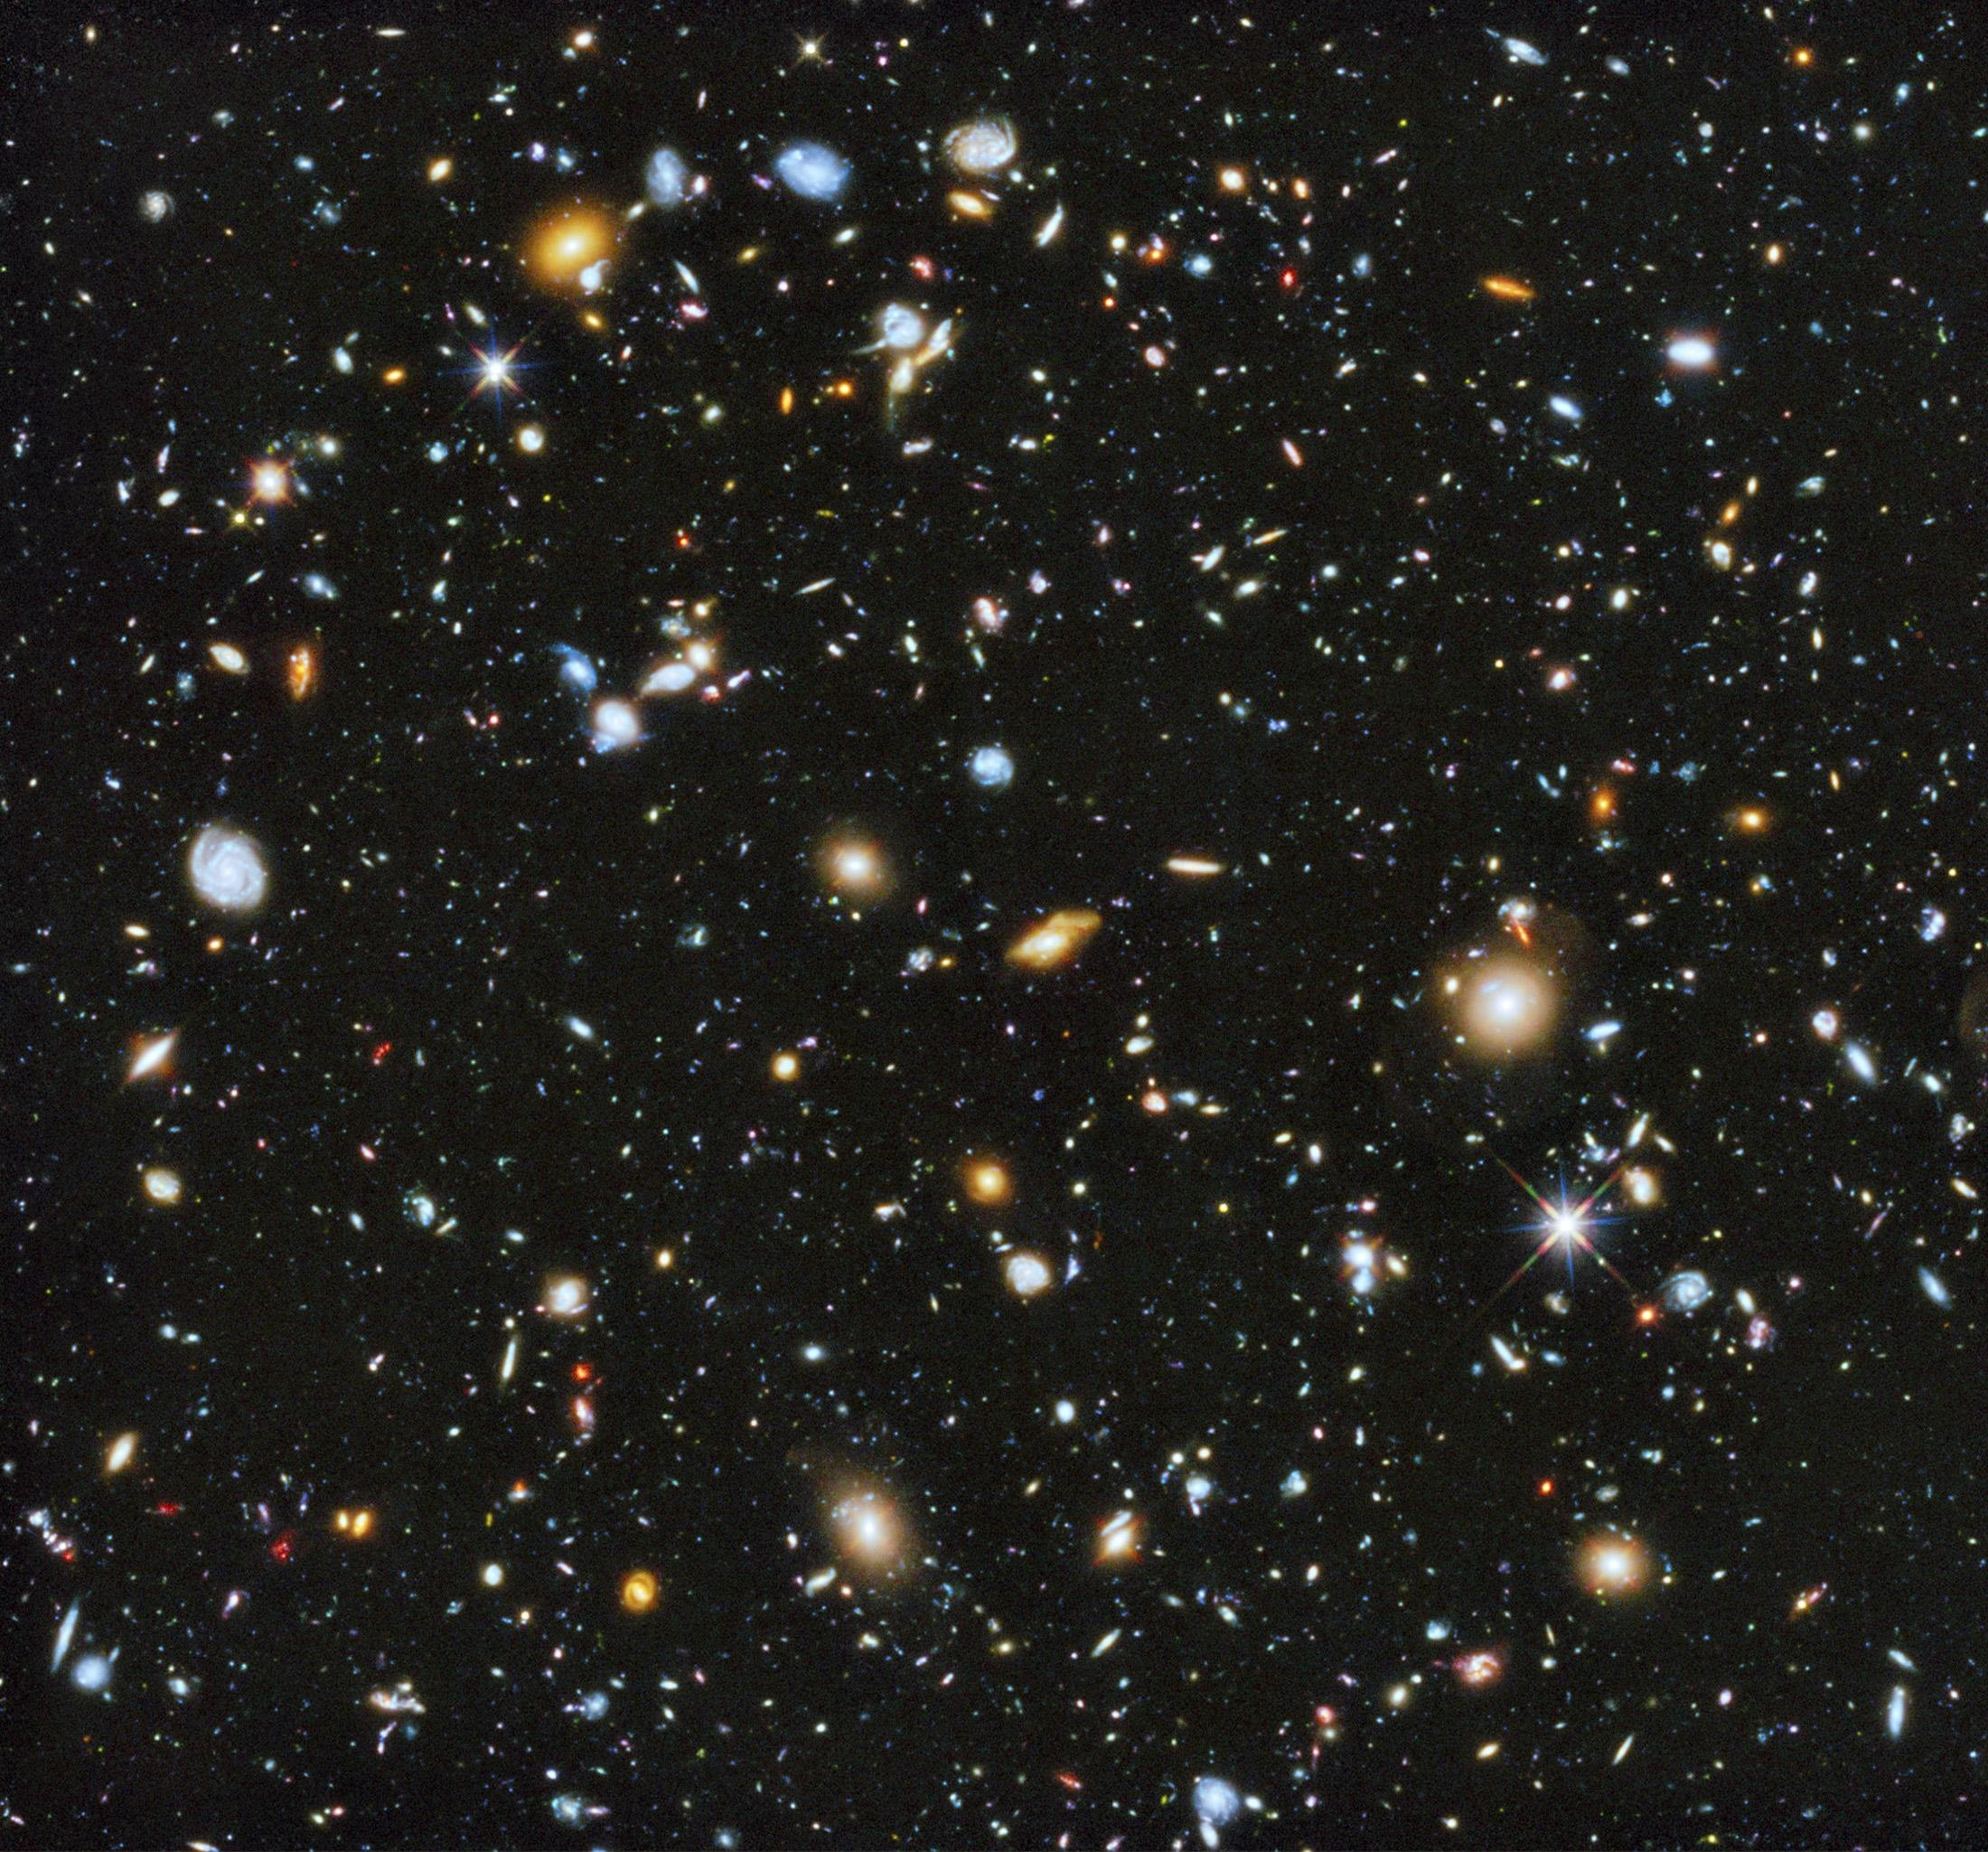 A composite of separate exposures taken in 2003 to 2012 with Hubble's Advanced Camera for Surveys and Wide Field Camera 3 of the evolving universe is shown in this image released on June 3, 2014.